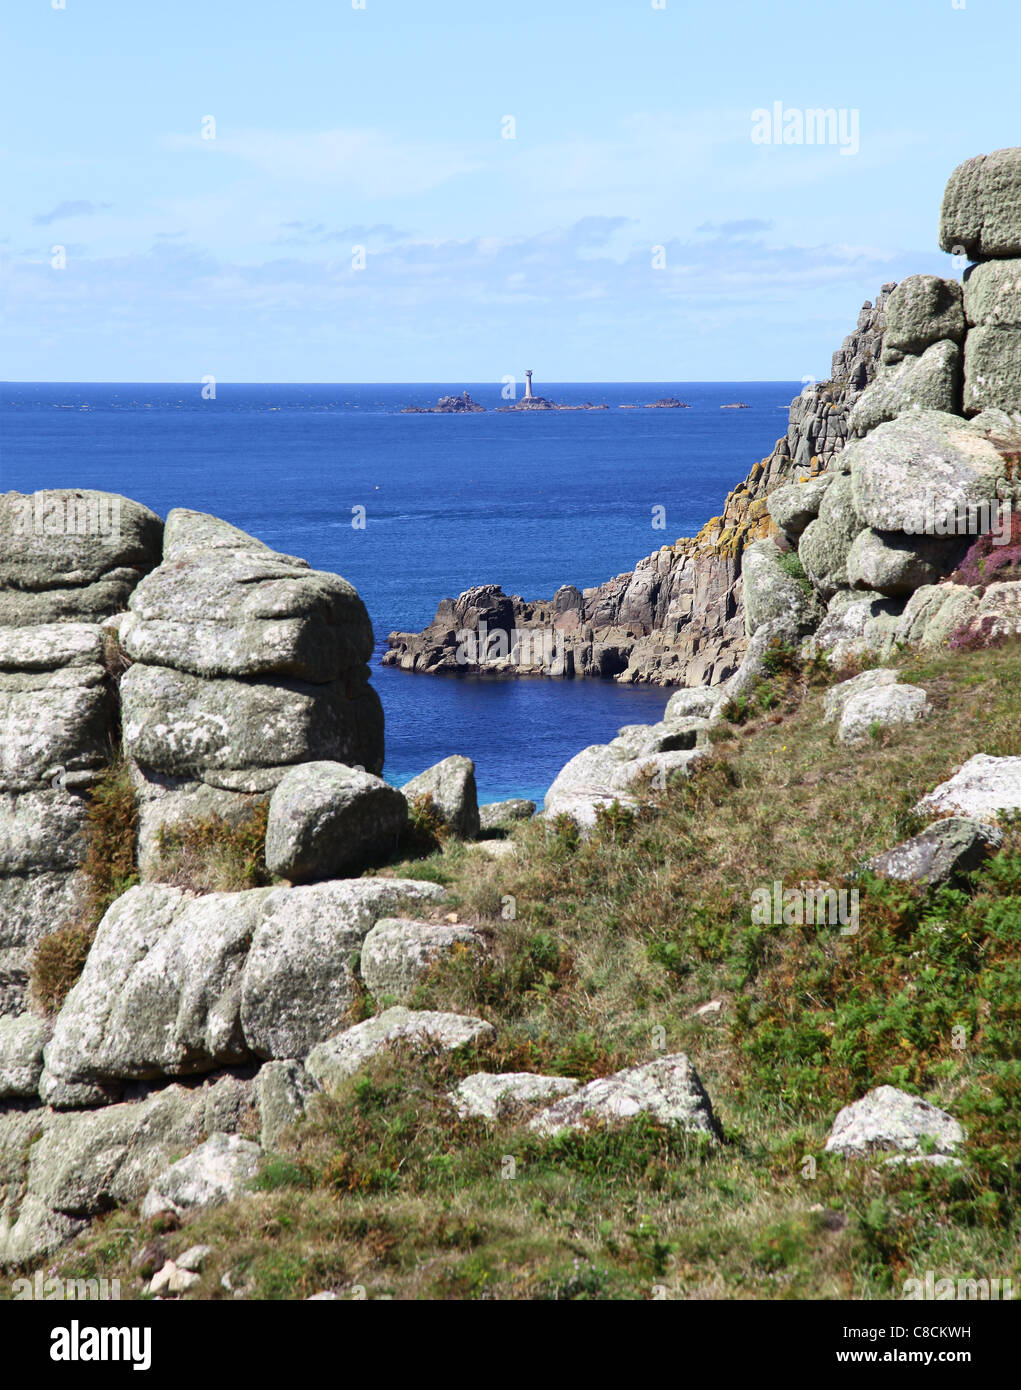 Longships lighthouse off Land's End Cornwall England UK viewed through rocks on the South West Coastal path - Stock Image